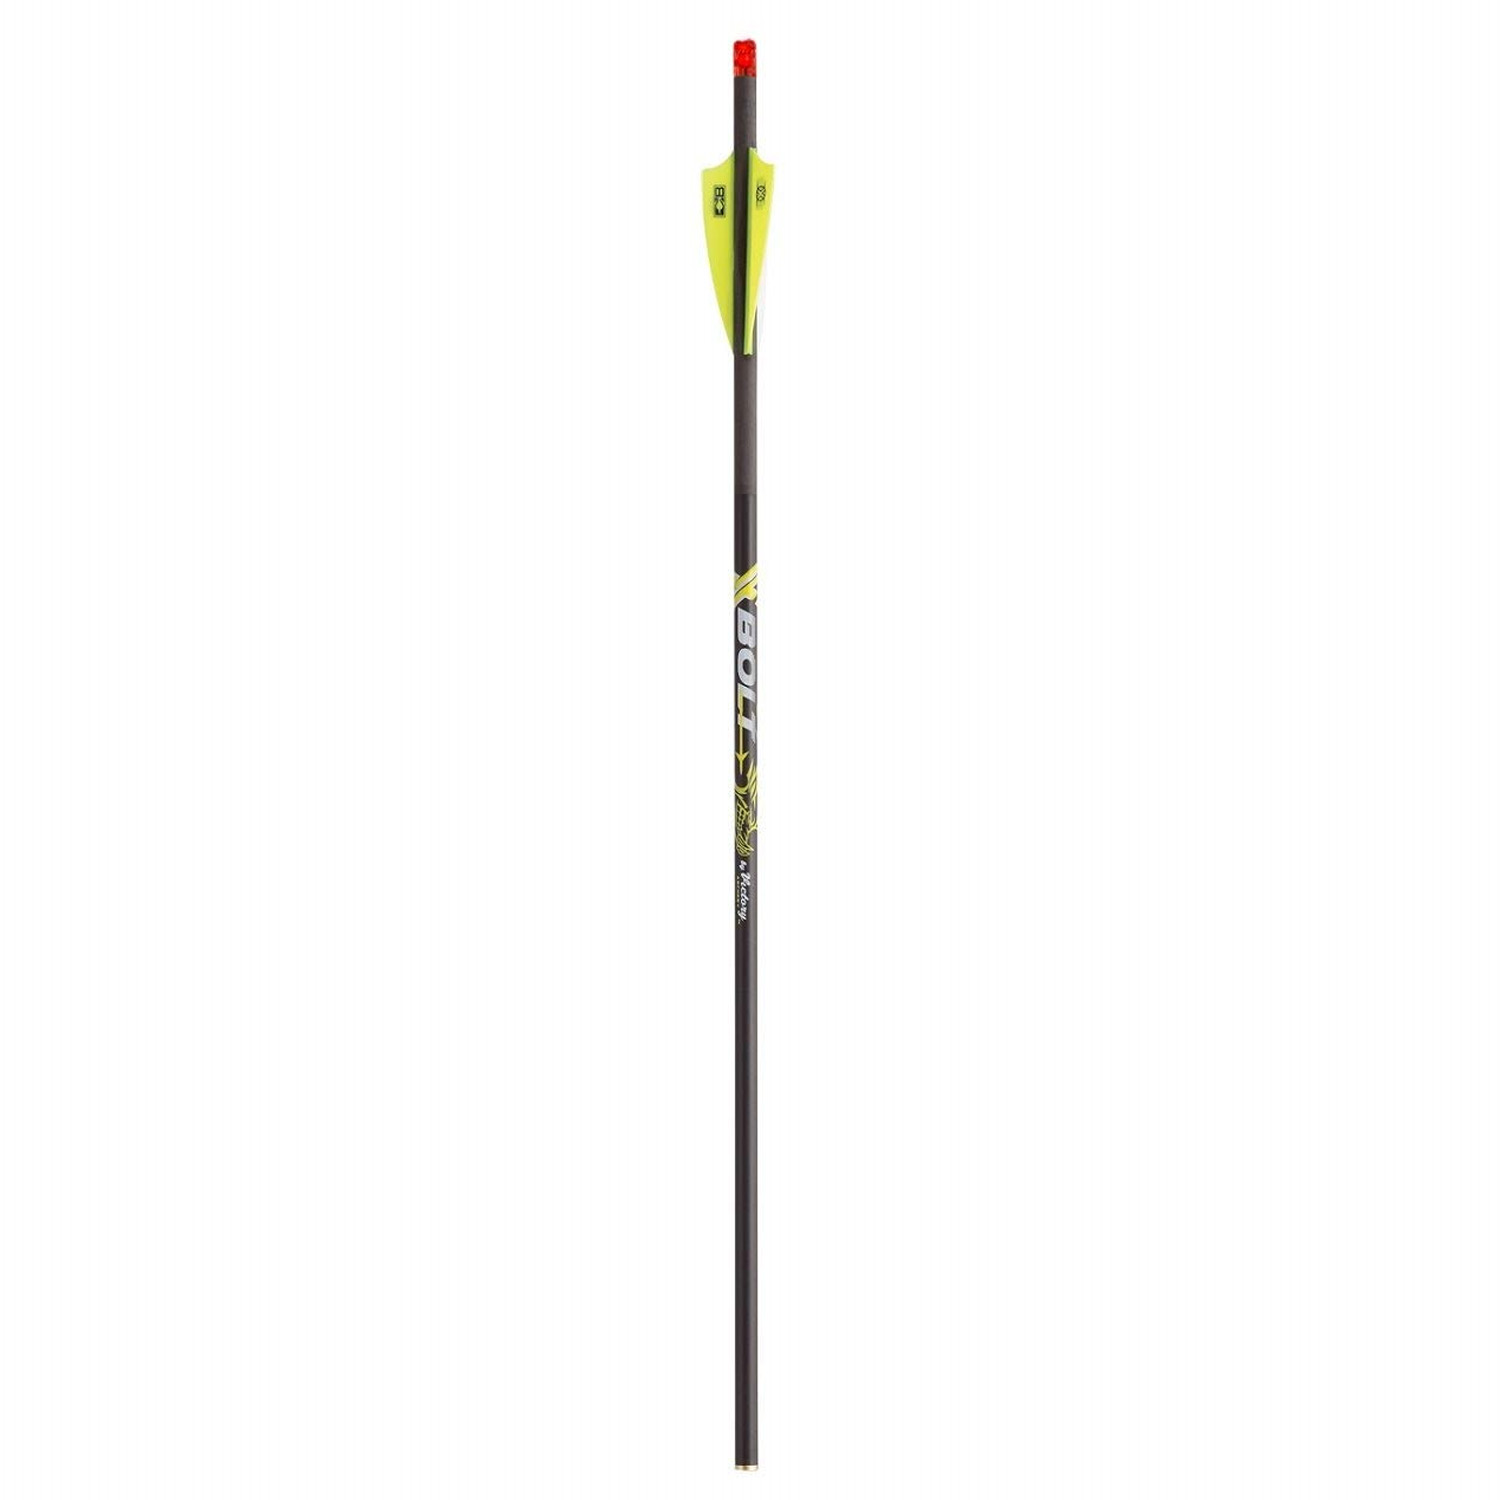 "BloodSport Hunter .003 22/"" Crossbow Bolts w// Moon Nocks /& 4/"" Vanes 6 Pack"